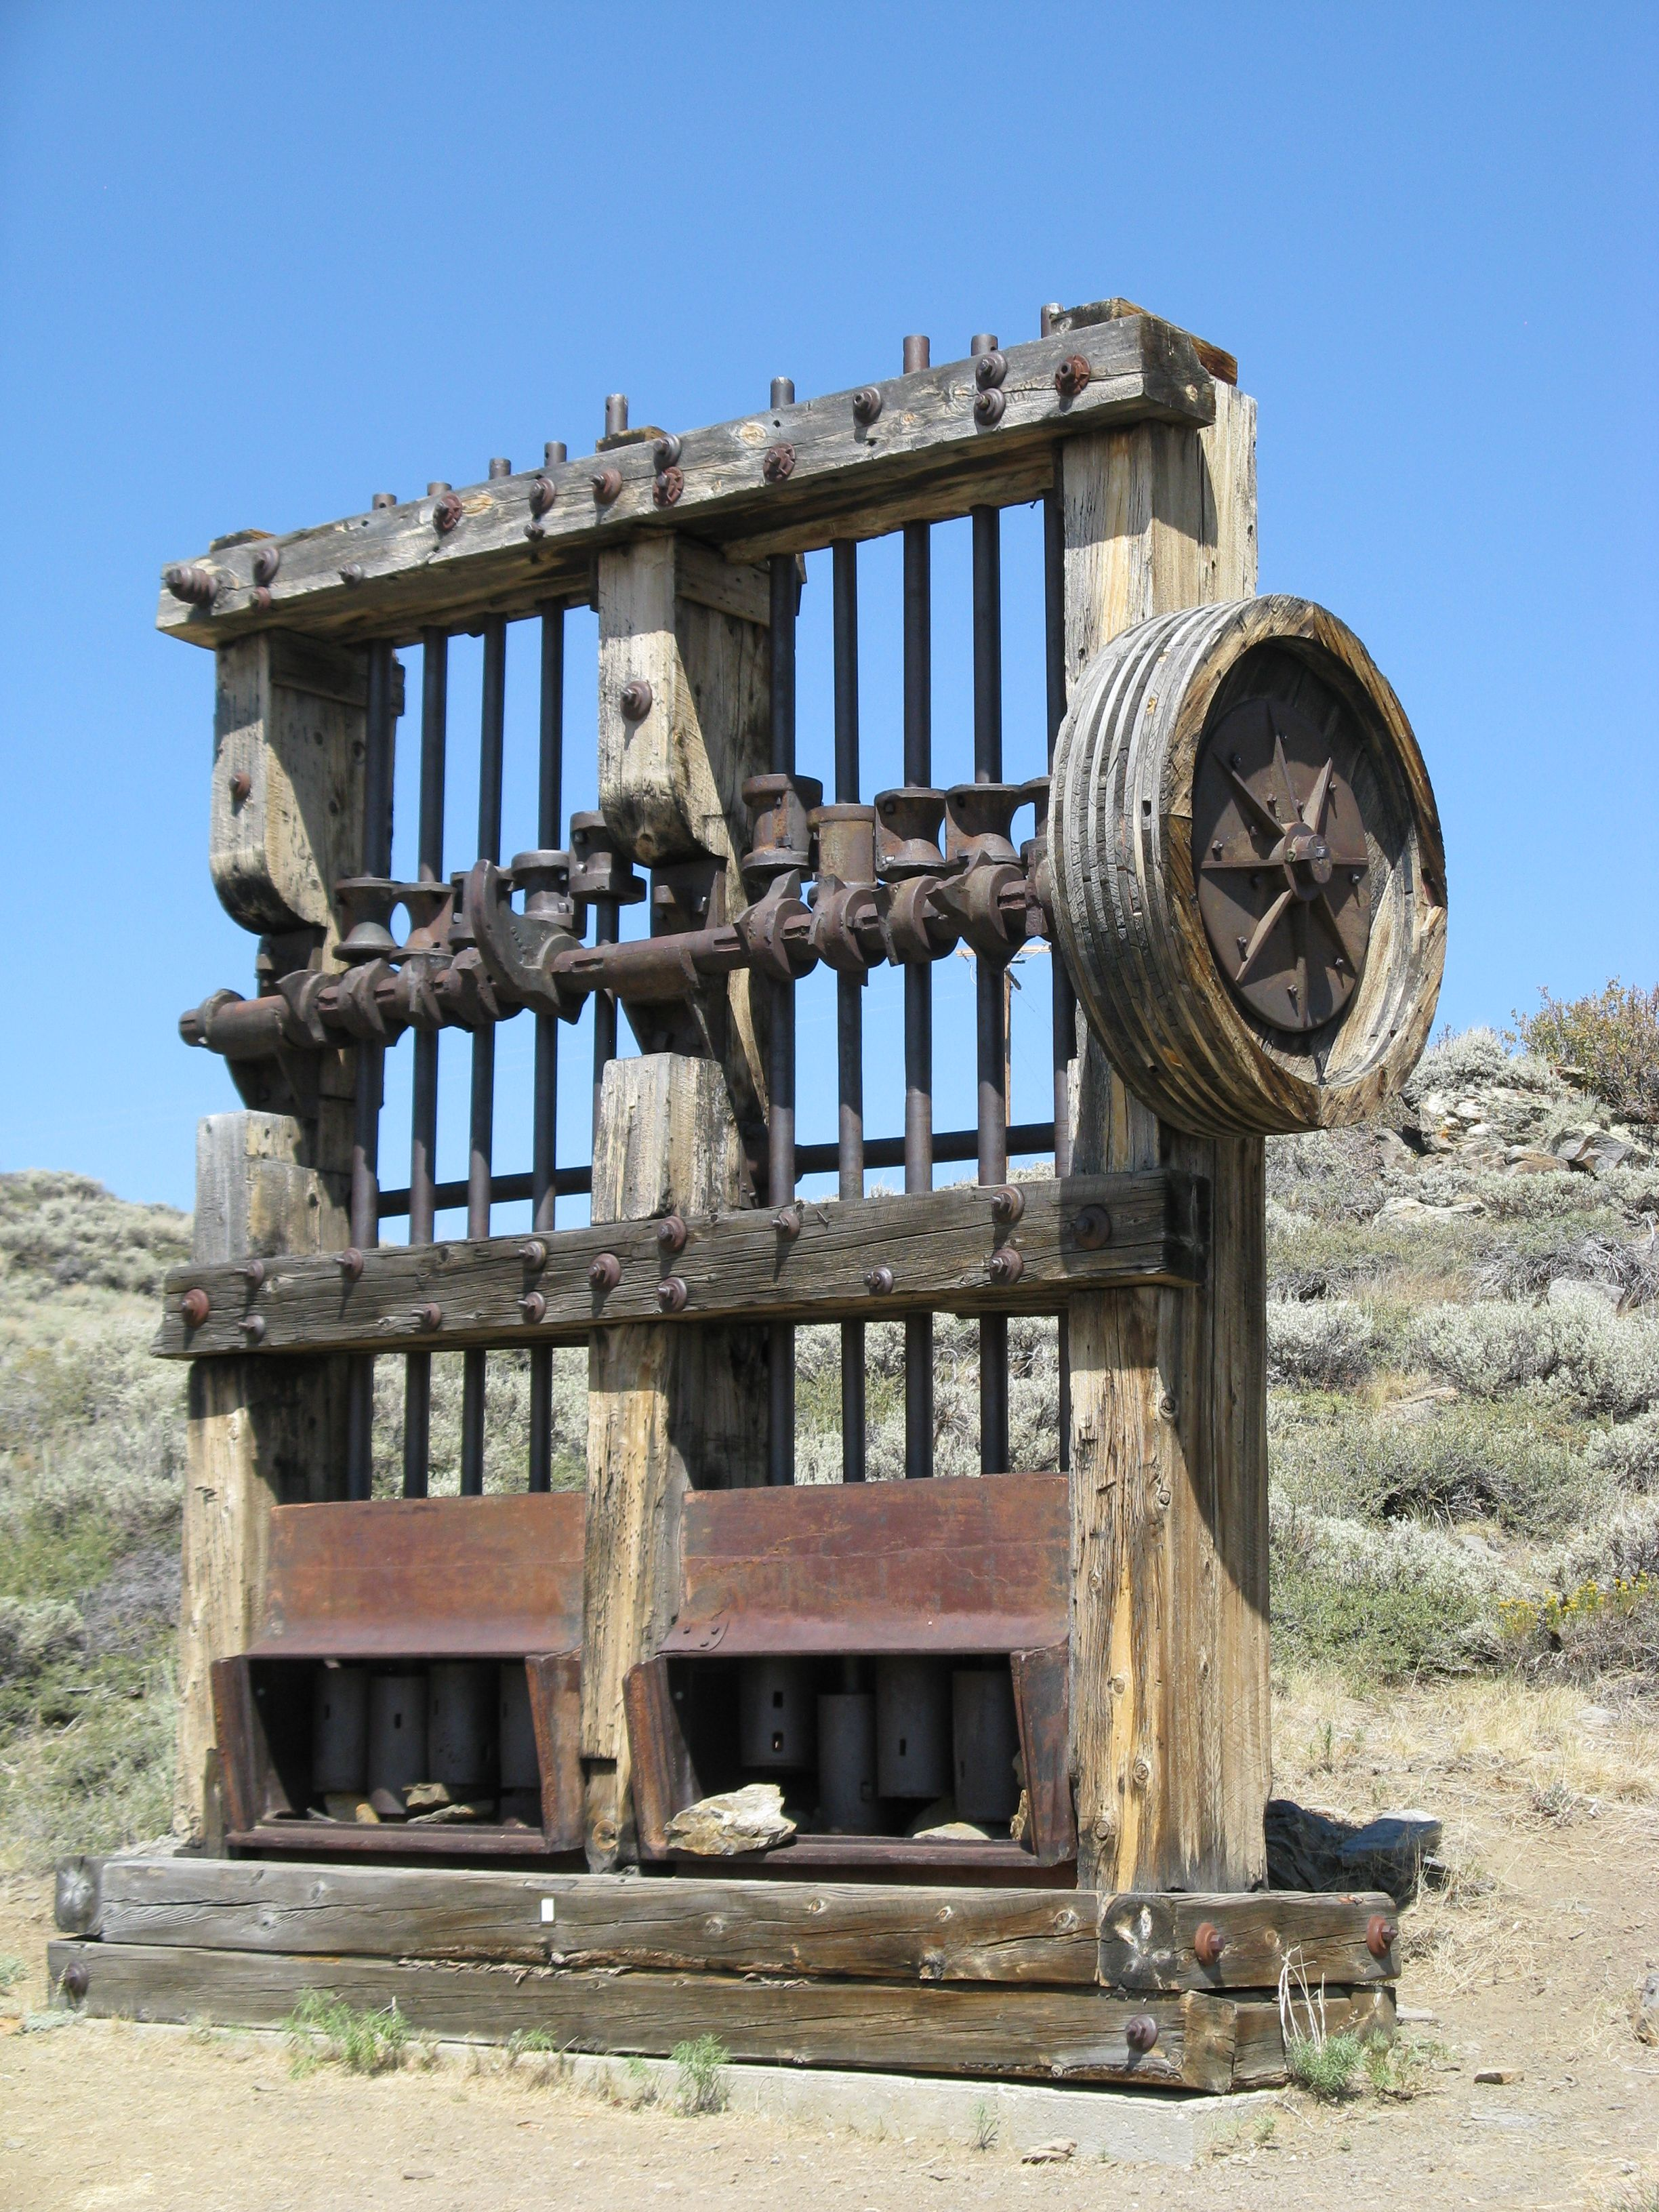 Old Stamp mill used to mine gold ore, have no idea how it